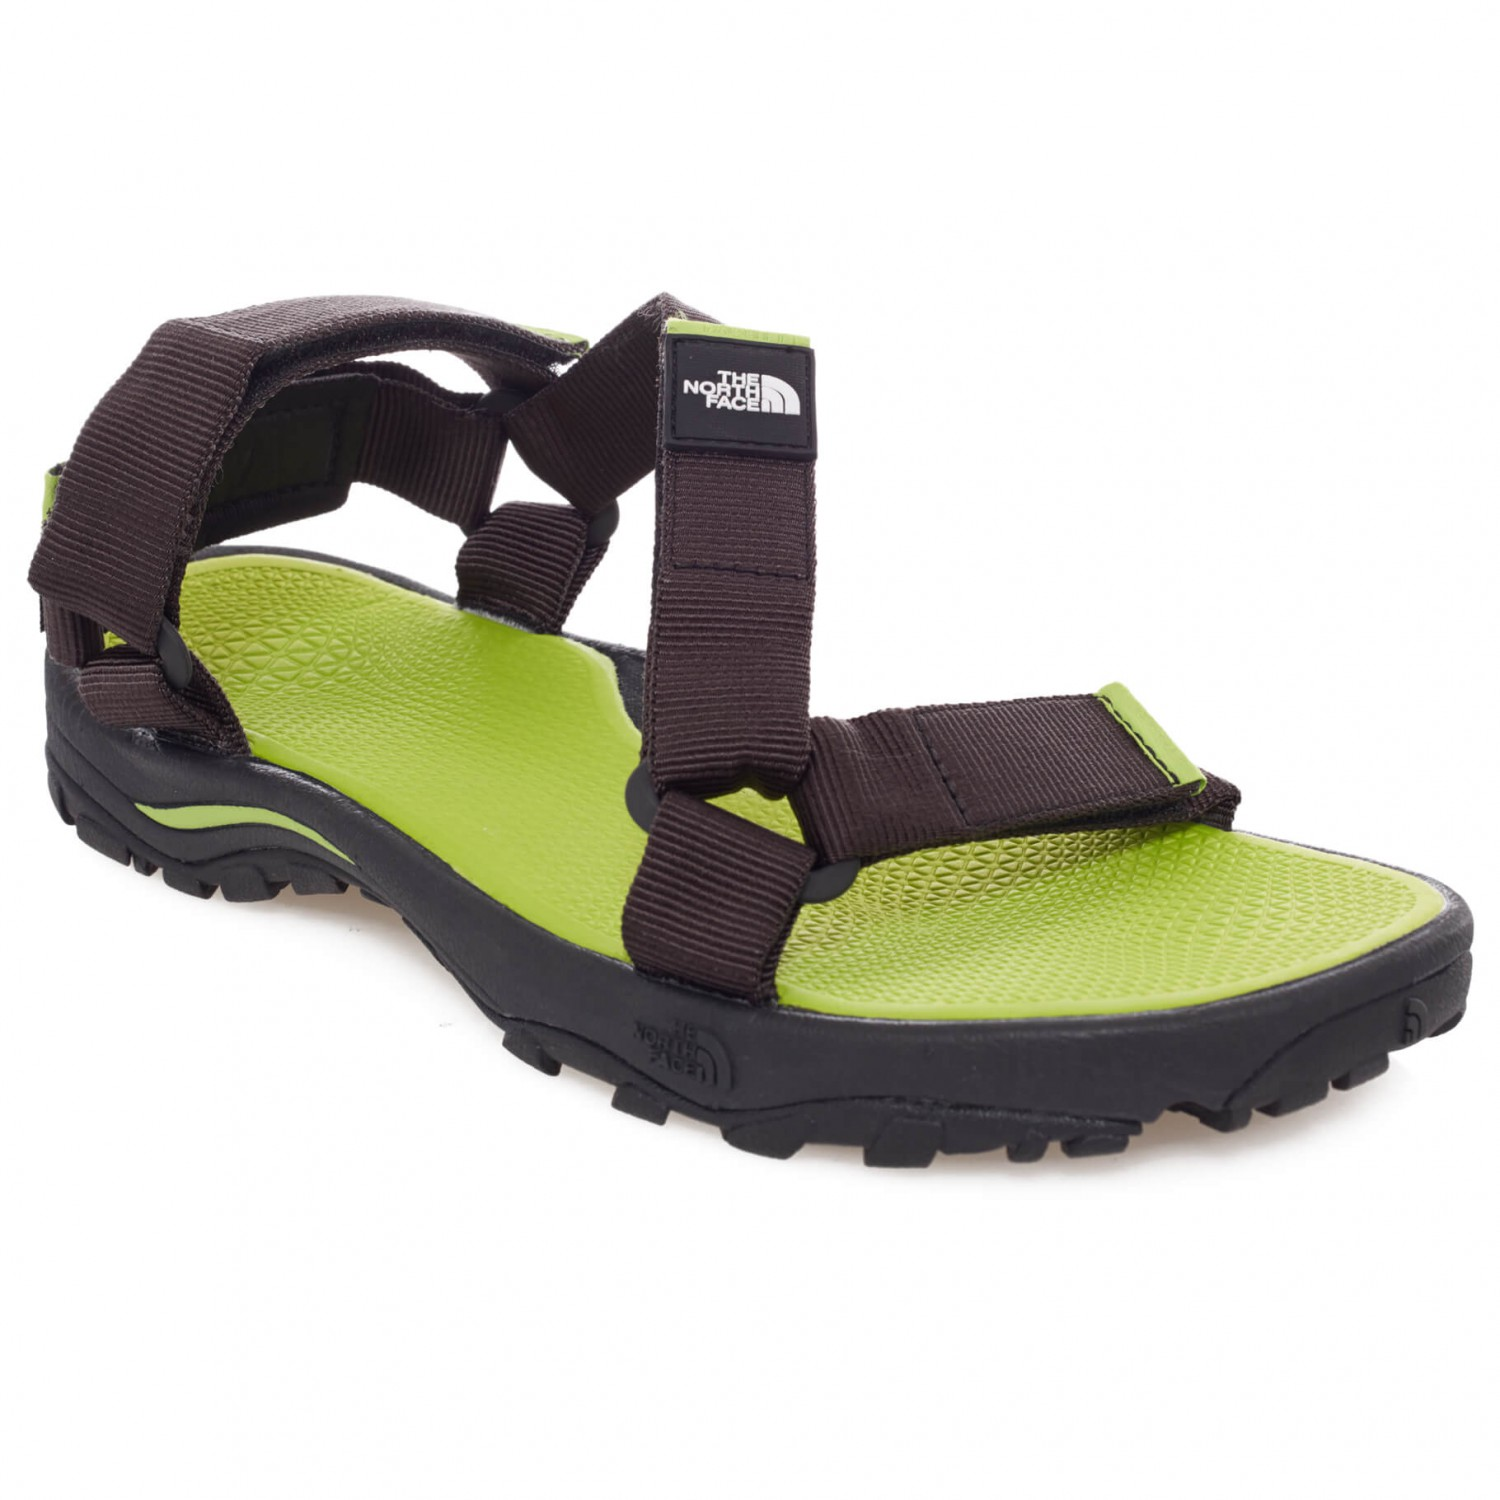 e873f4a11 The North Face Litewave Sandal - Sandals Men's | Buy online ...